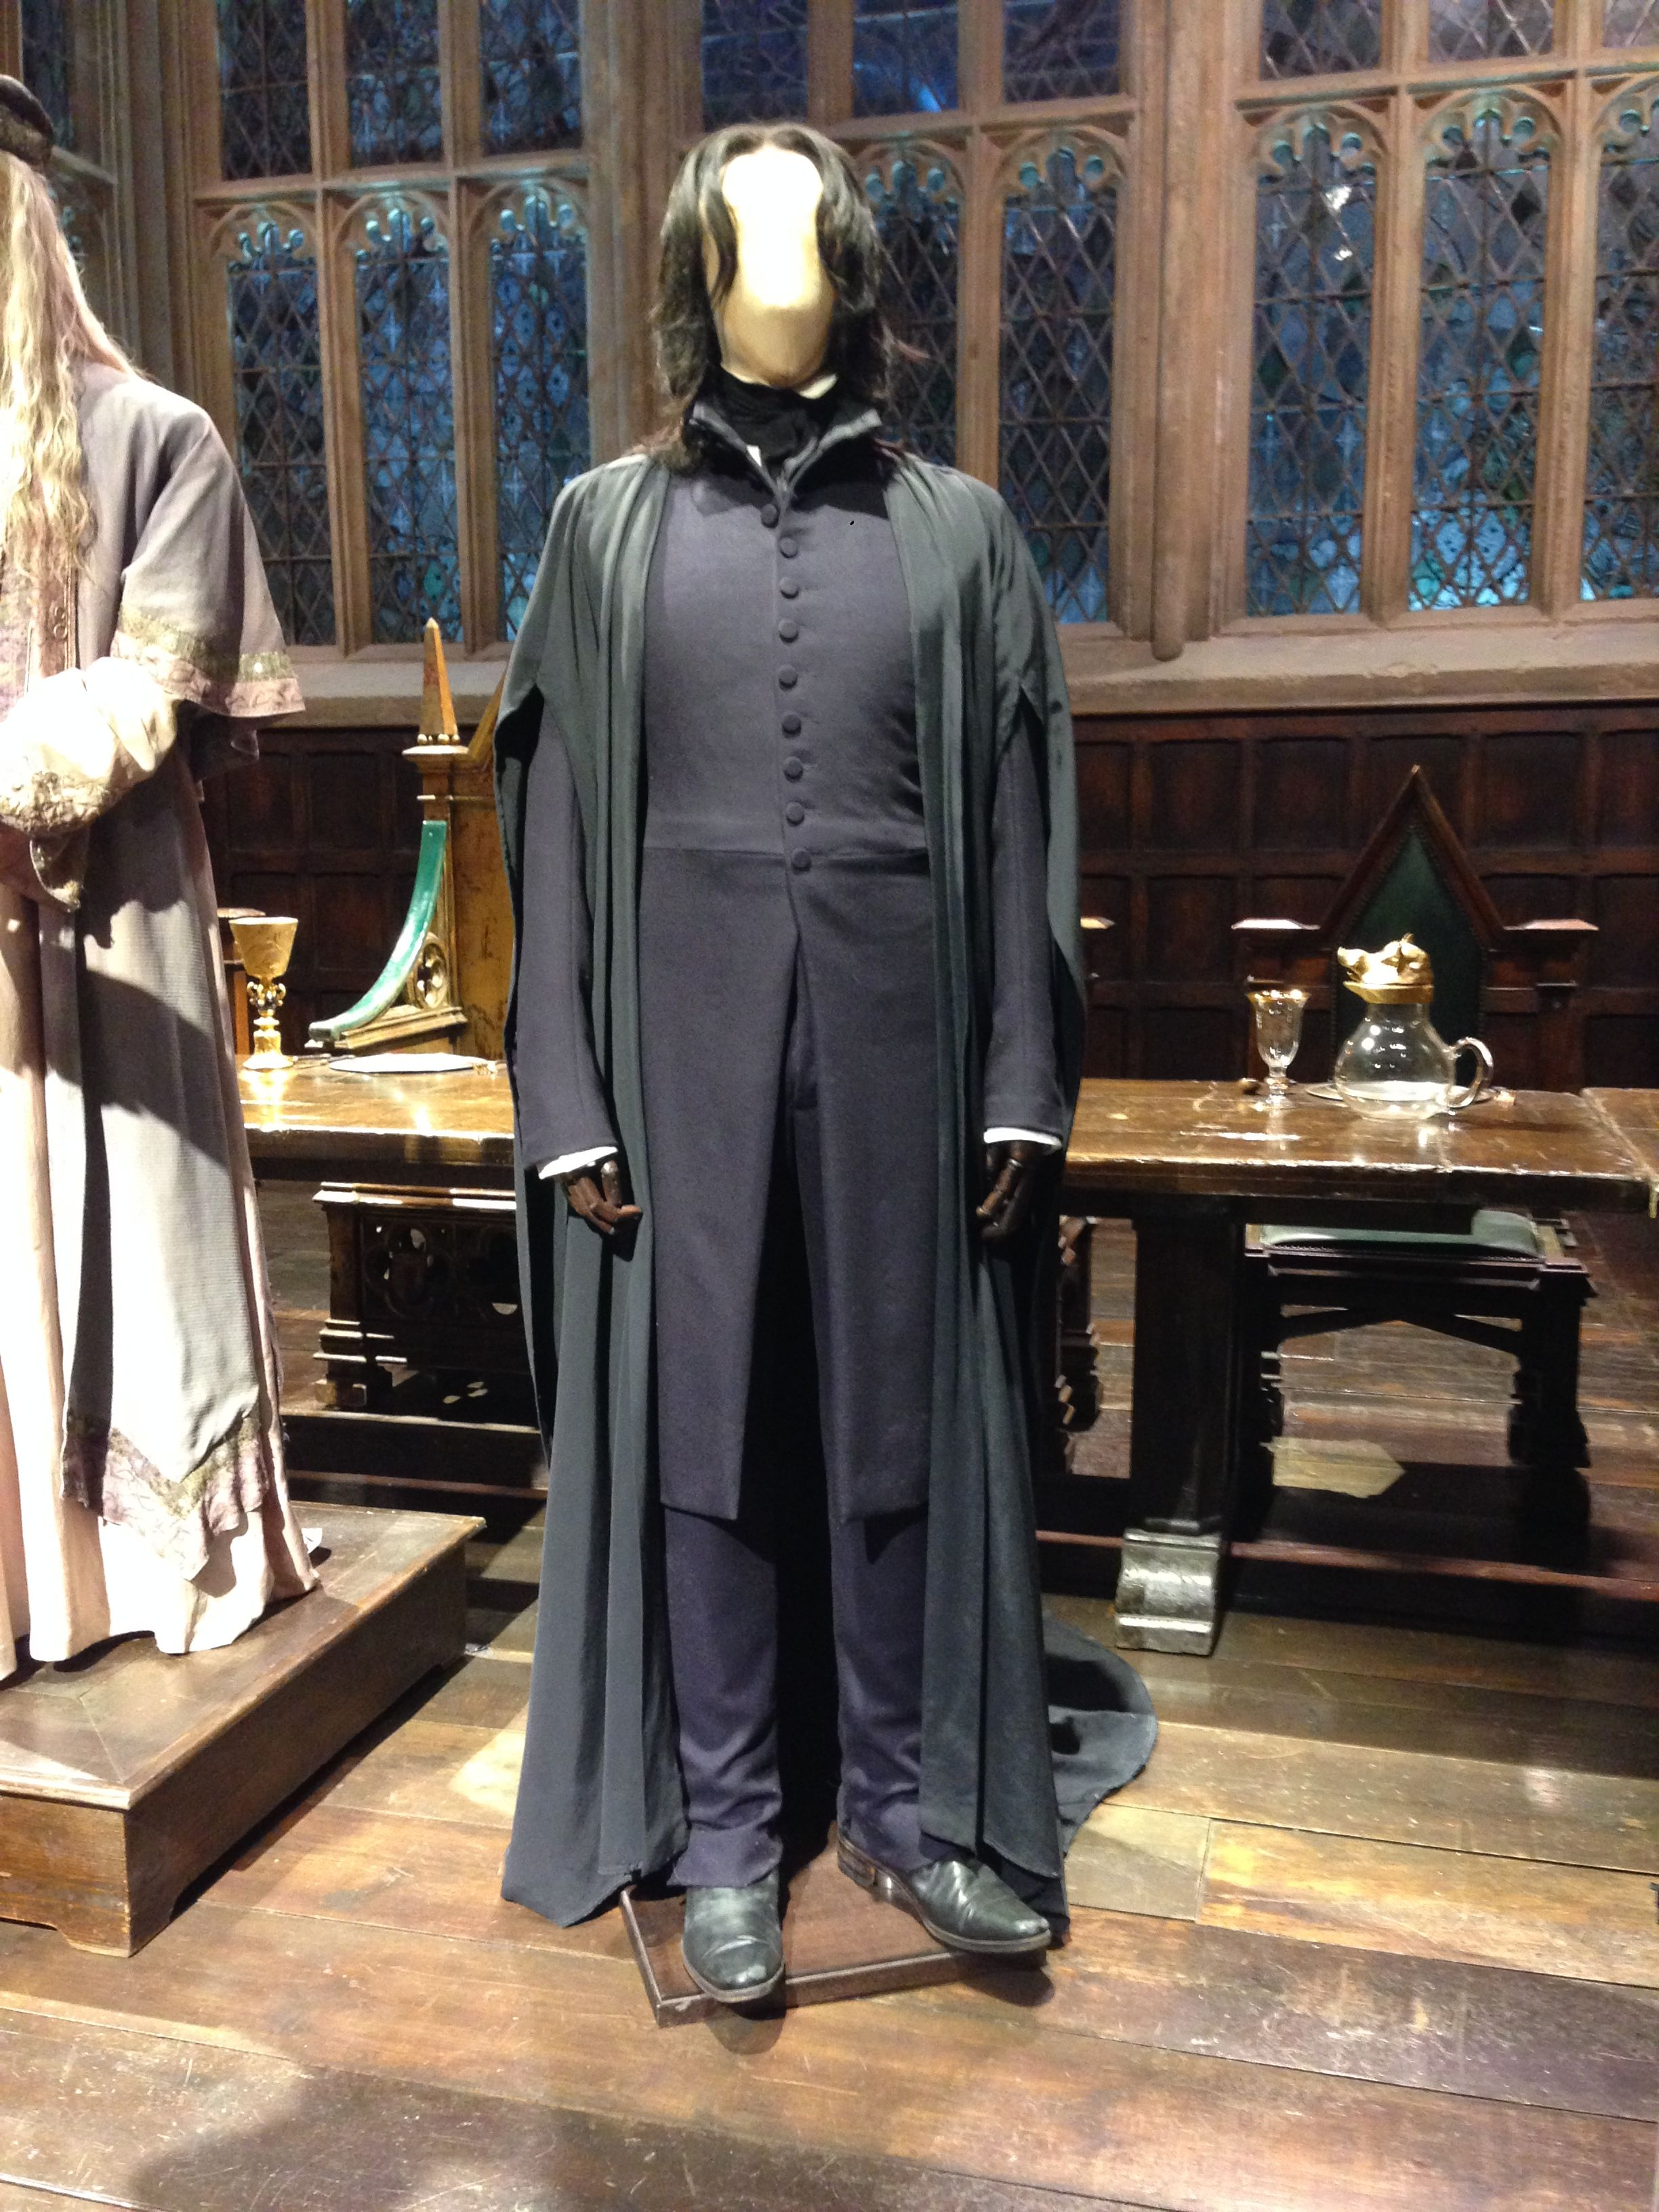 Professor Snape Costume From The Harry Potter Films Snape Costume Harry Potter Costume Harry Potter Cosplay